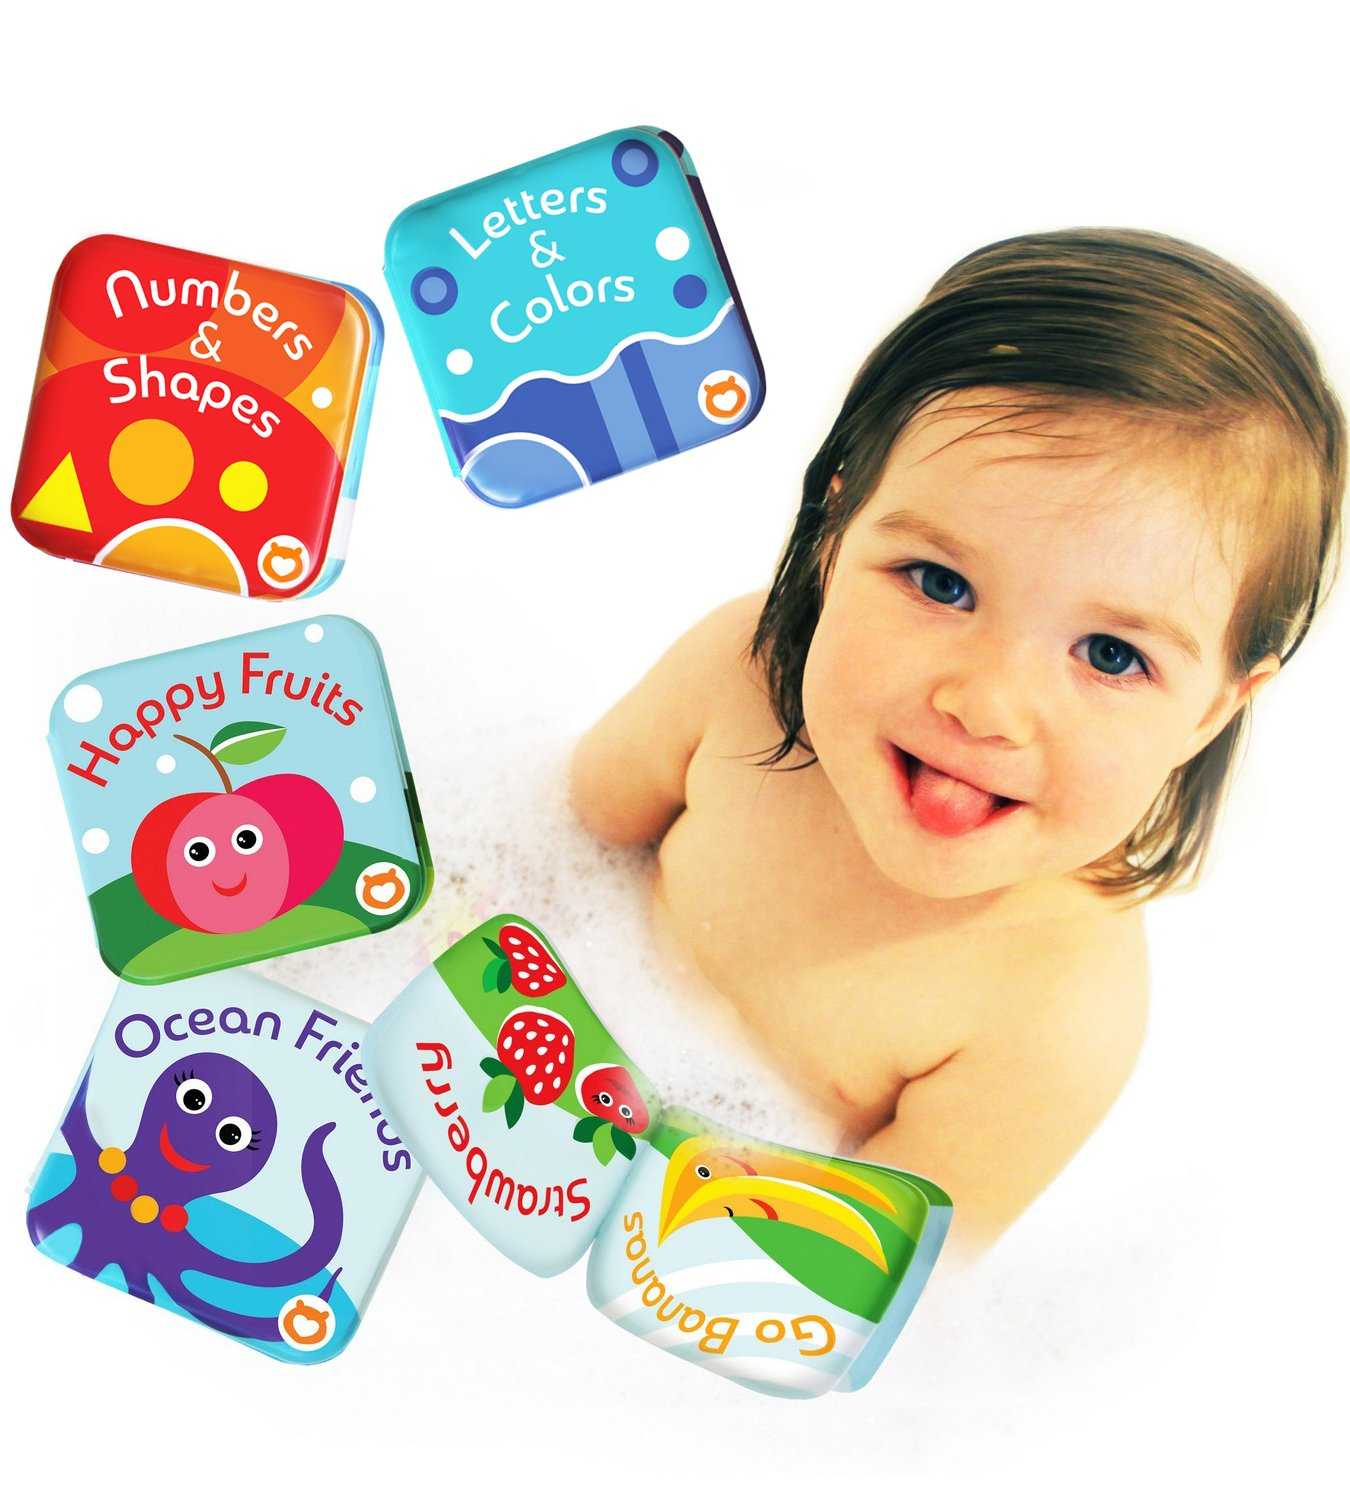 BabyBibi Floating Baby Bath Books. Kids Learning Bath Toys. Waterproof Bathtime Toys for Toddlers. Kids Educational Infant Bath Toys. (Set of 4: Fruit, Ocean, ABC, Numbers Books)